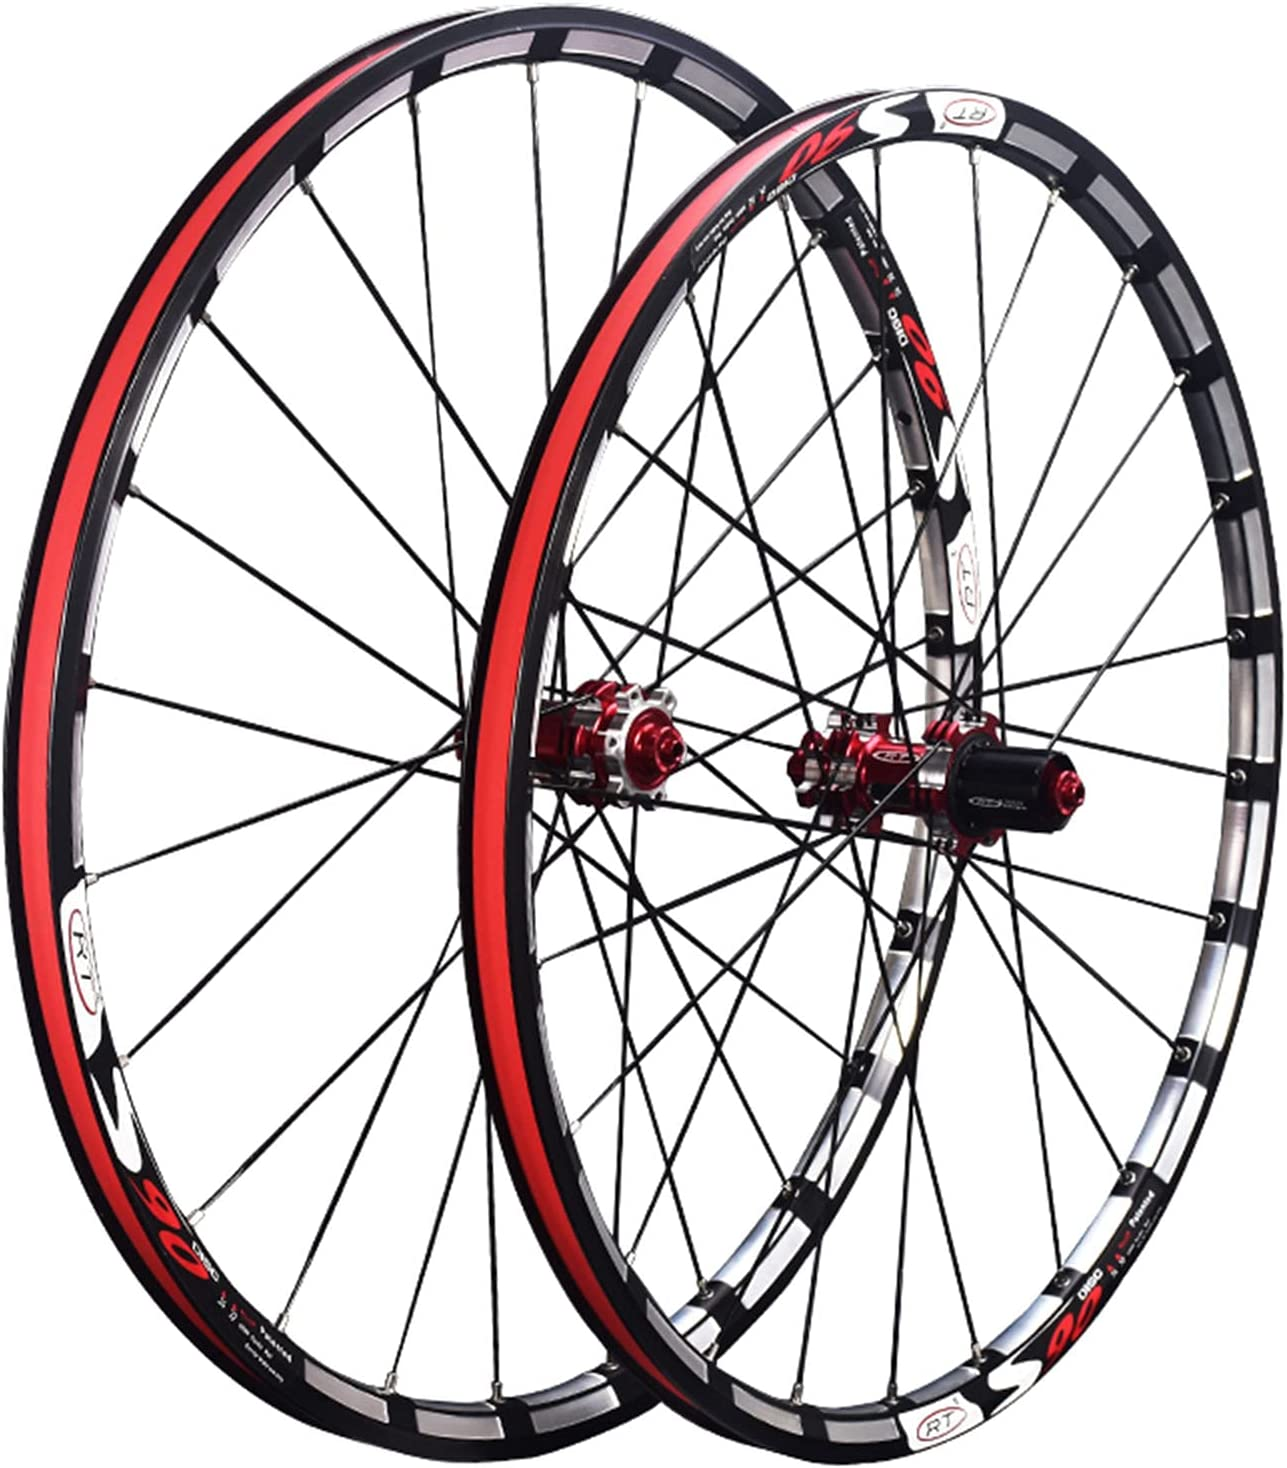 Mountain Bike Wheelset Aluminum Alloy Front Max 86% OFF Quick Rear Ranking TOP4 Release